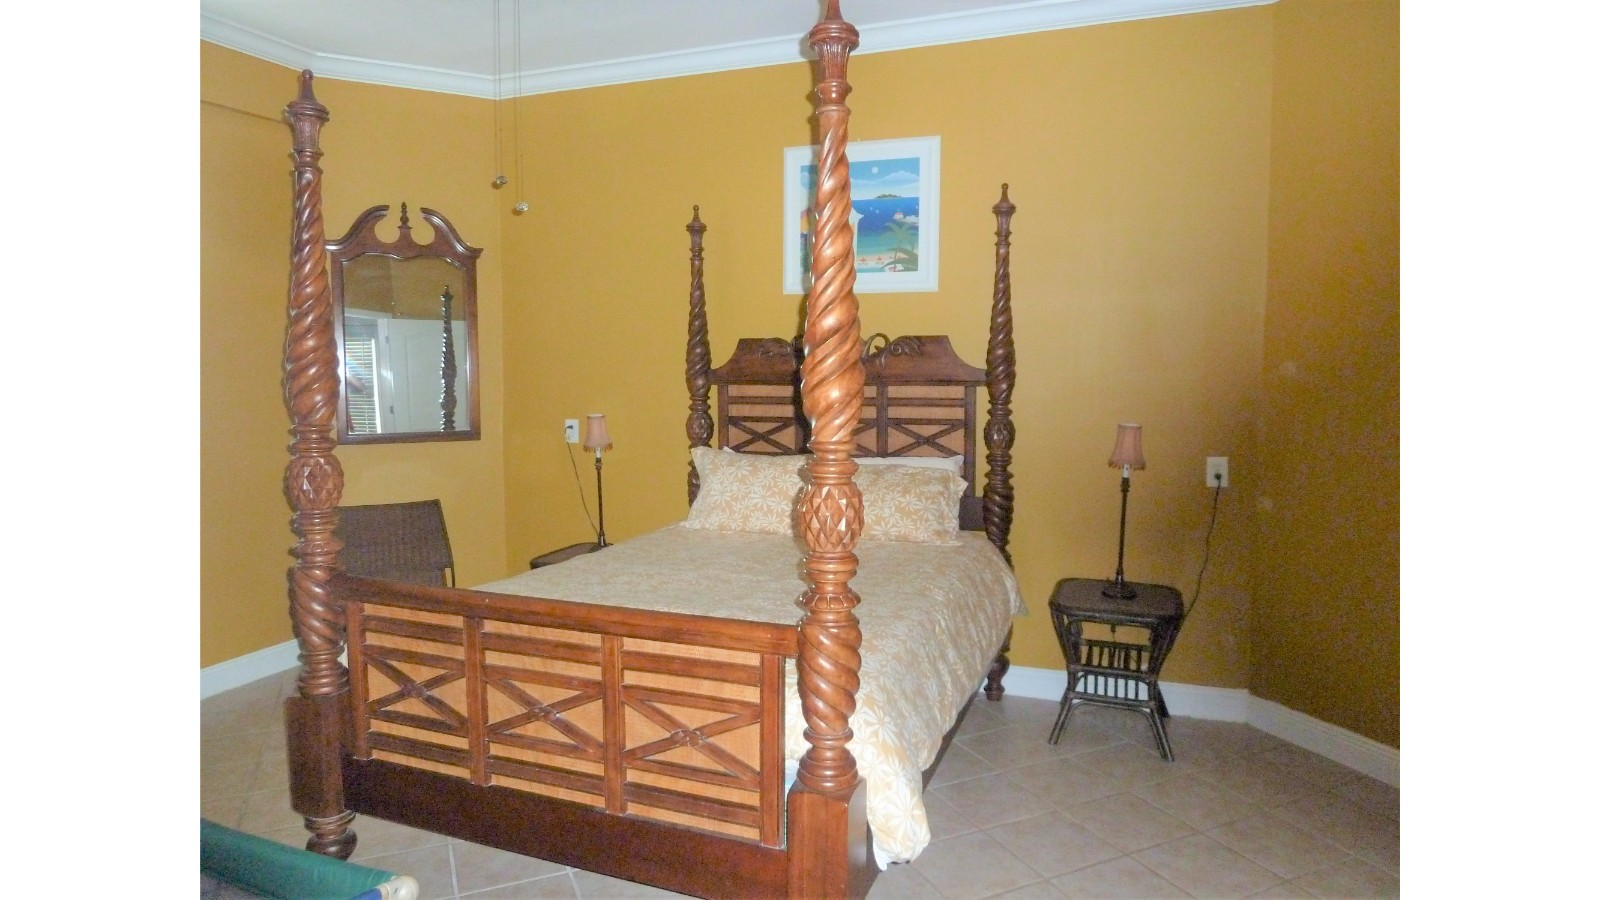 Gold Room, King Mattress, Window Air Conditioner, Huge Amoire